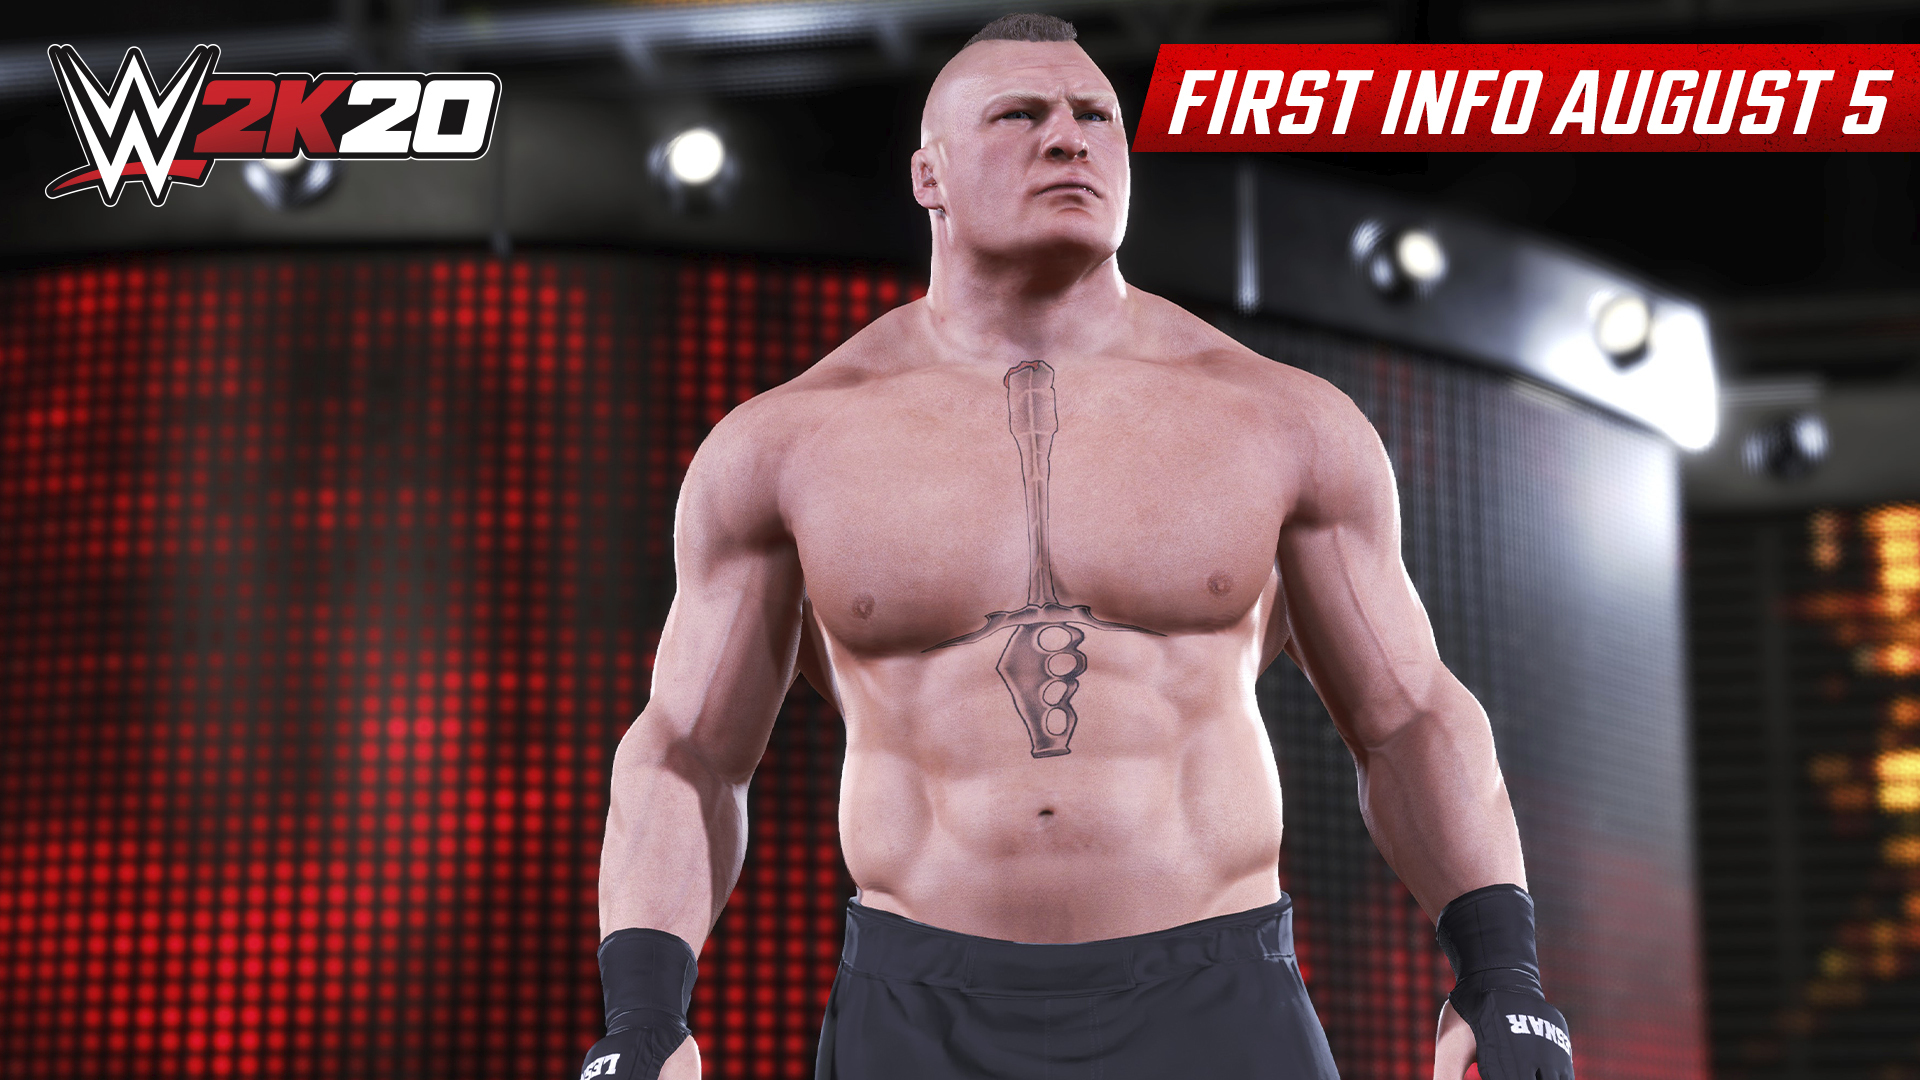 WWE 2K20: First In-Game Images